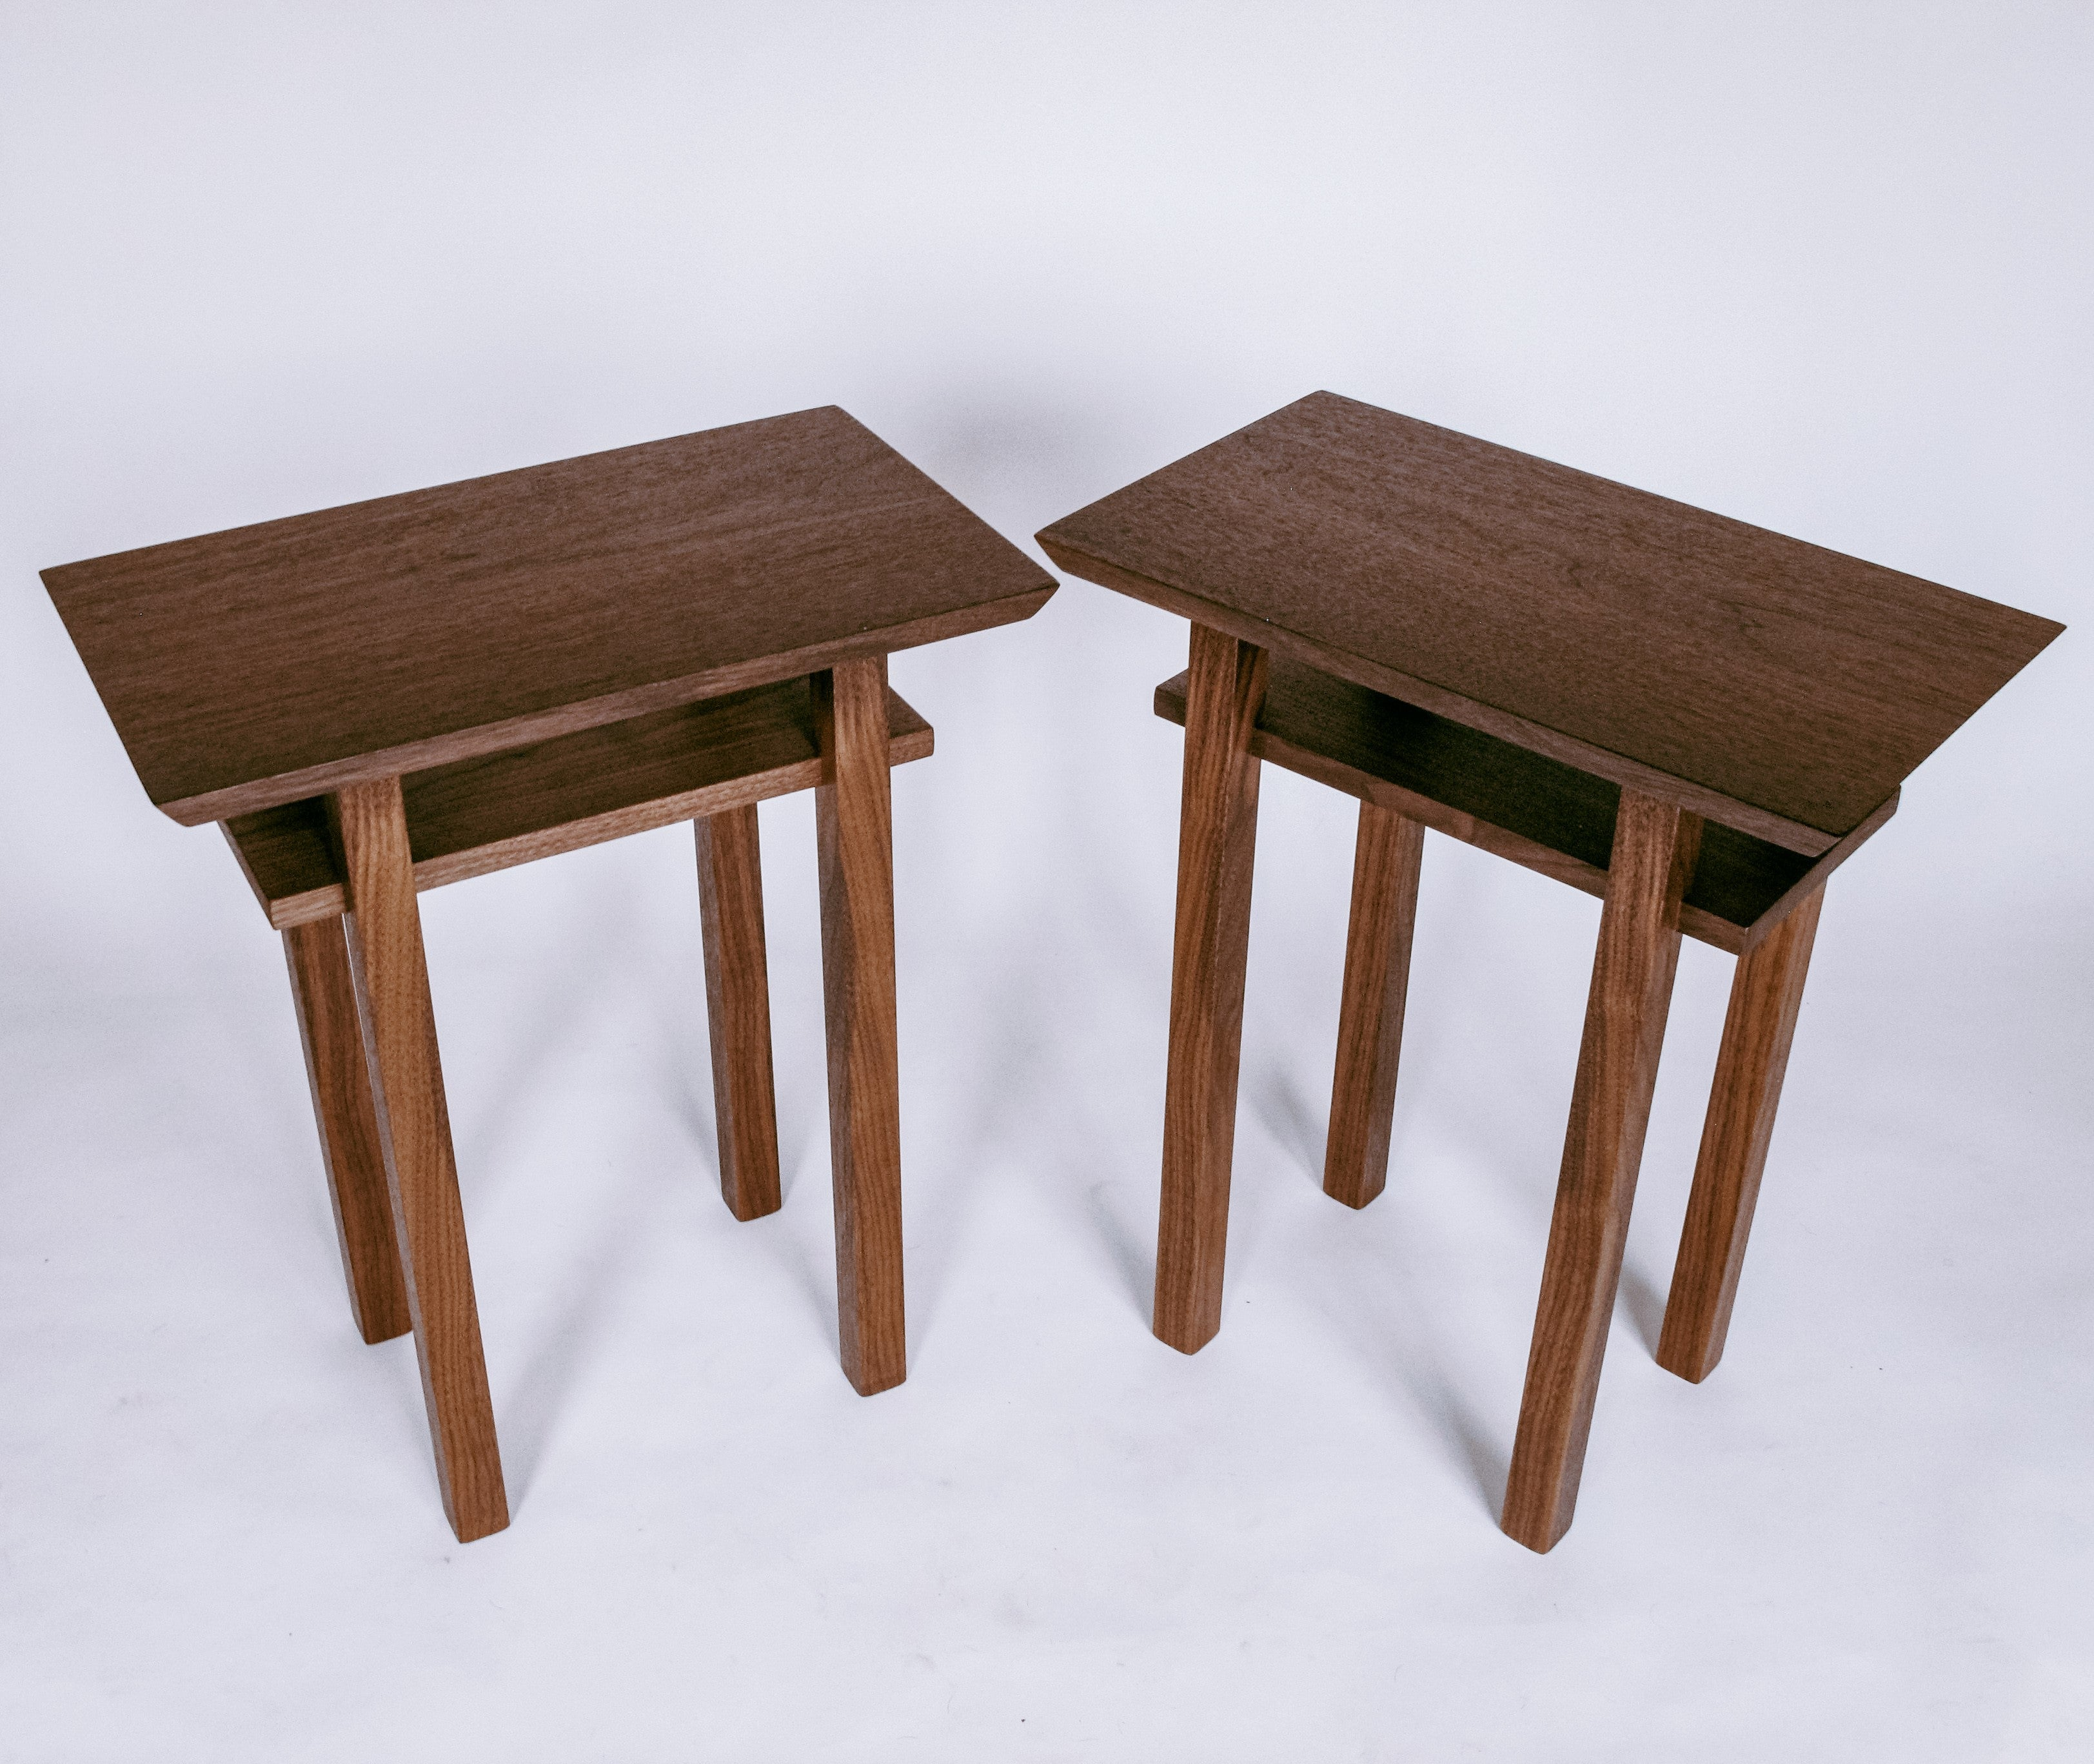 minimalist wood furniture - small end tables